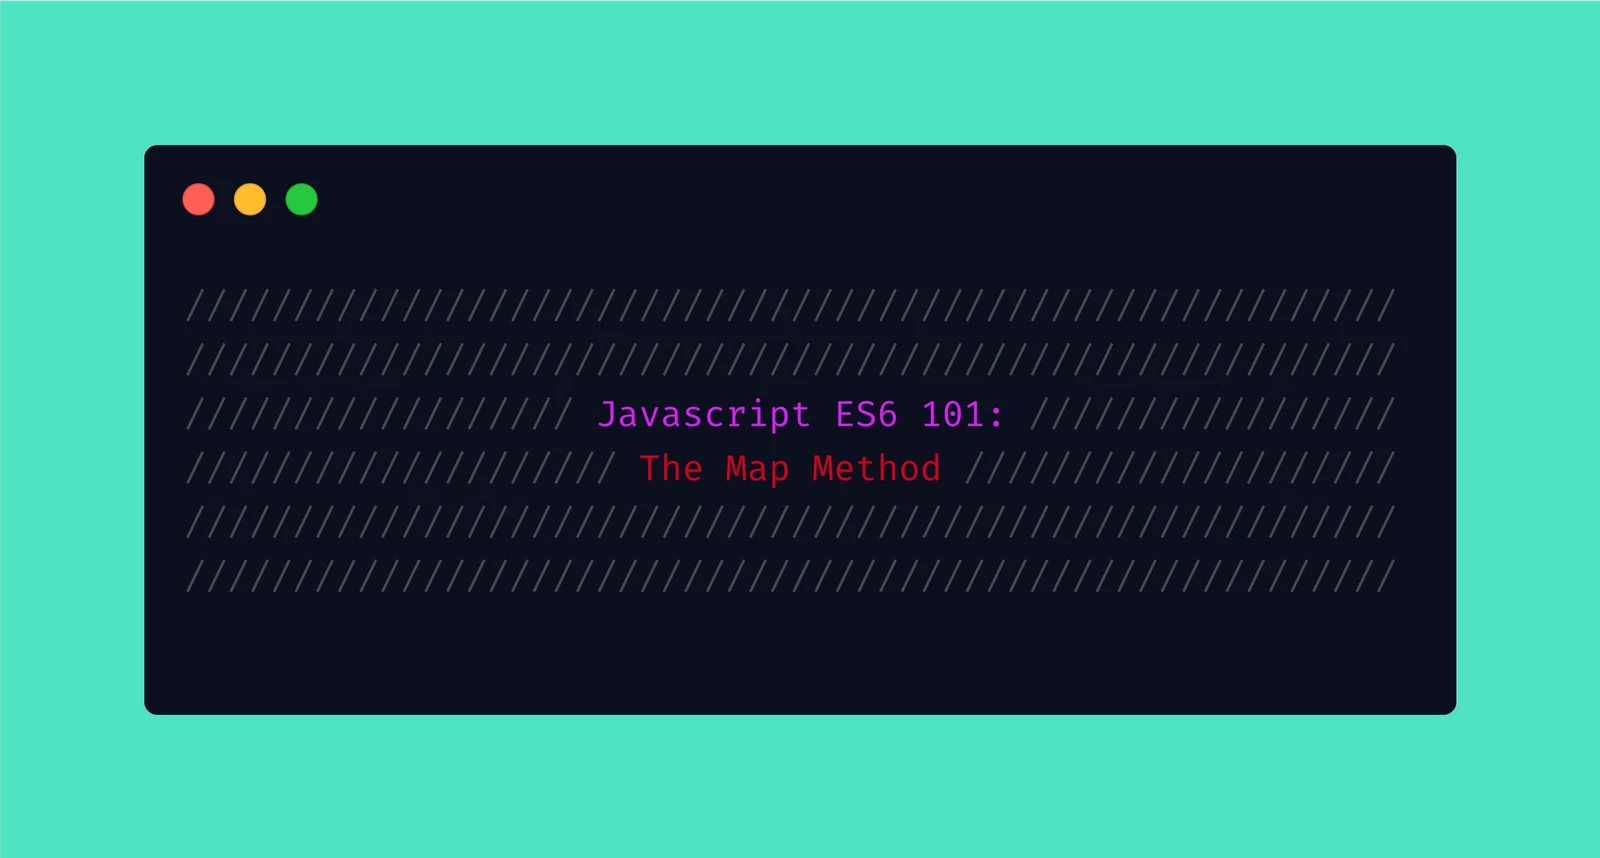 /introducing-the-map-method-in-javascript-es6-101-nk2h319j feature image